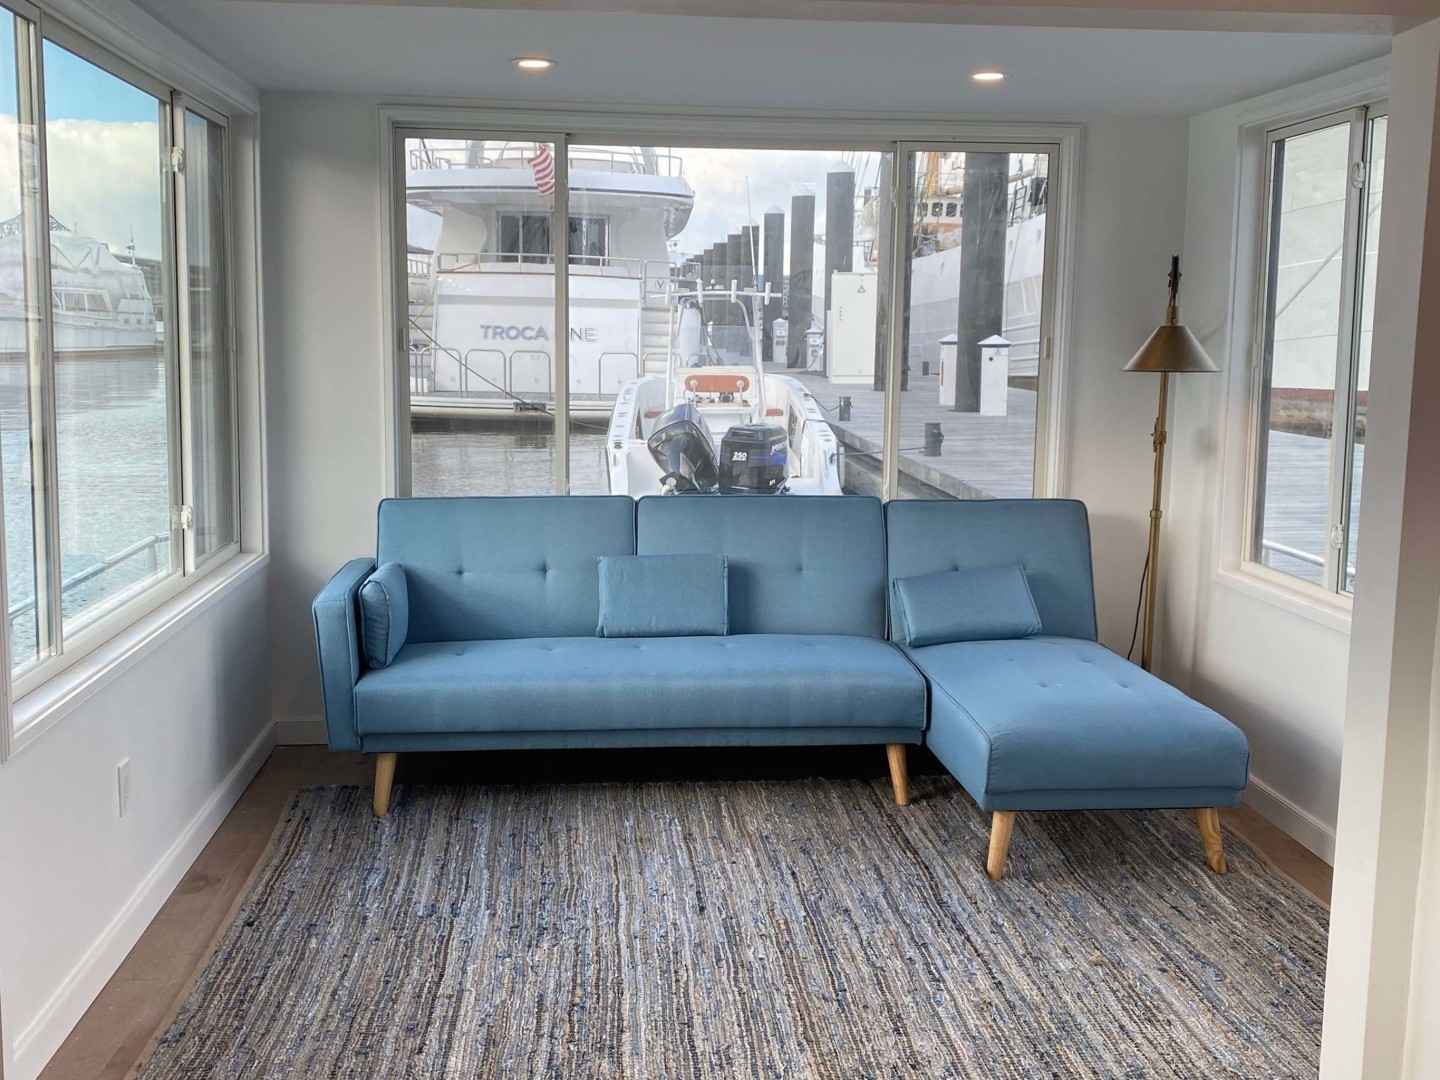 Sumerset-Houseboat 1981 -Charlestown-Massachusetts-United States-Four Season Family Room And Or Guest Room With 270 Degree Views-1377443 | Thumbnail